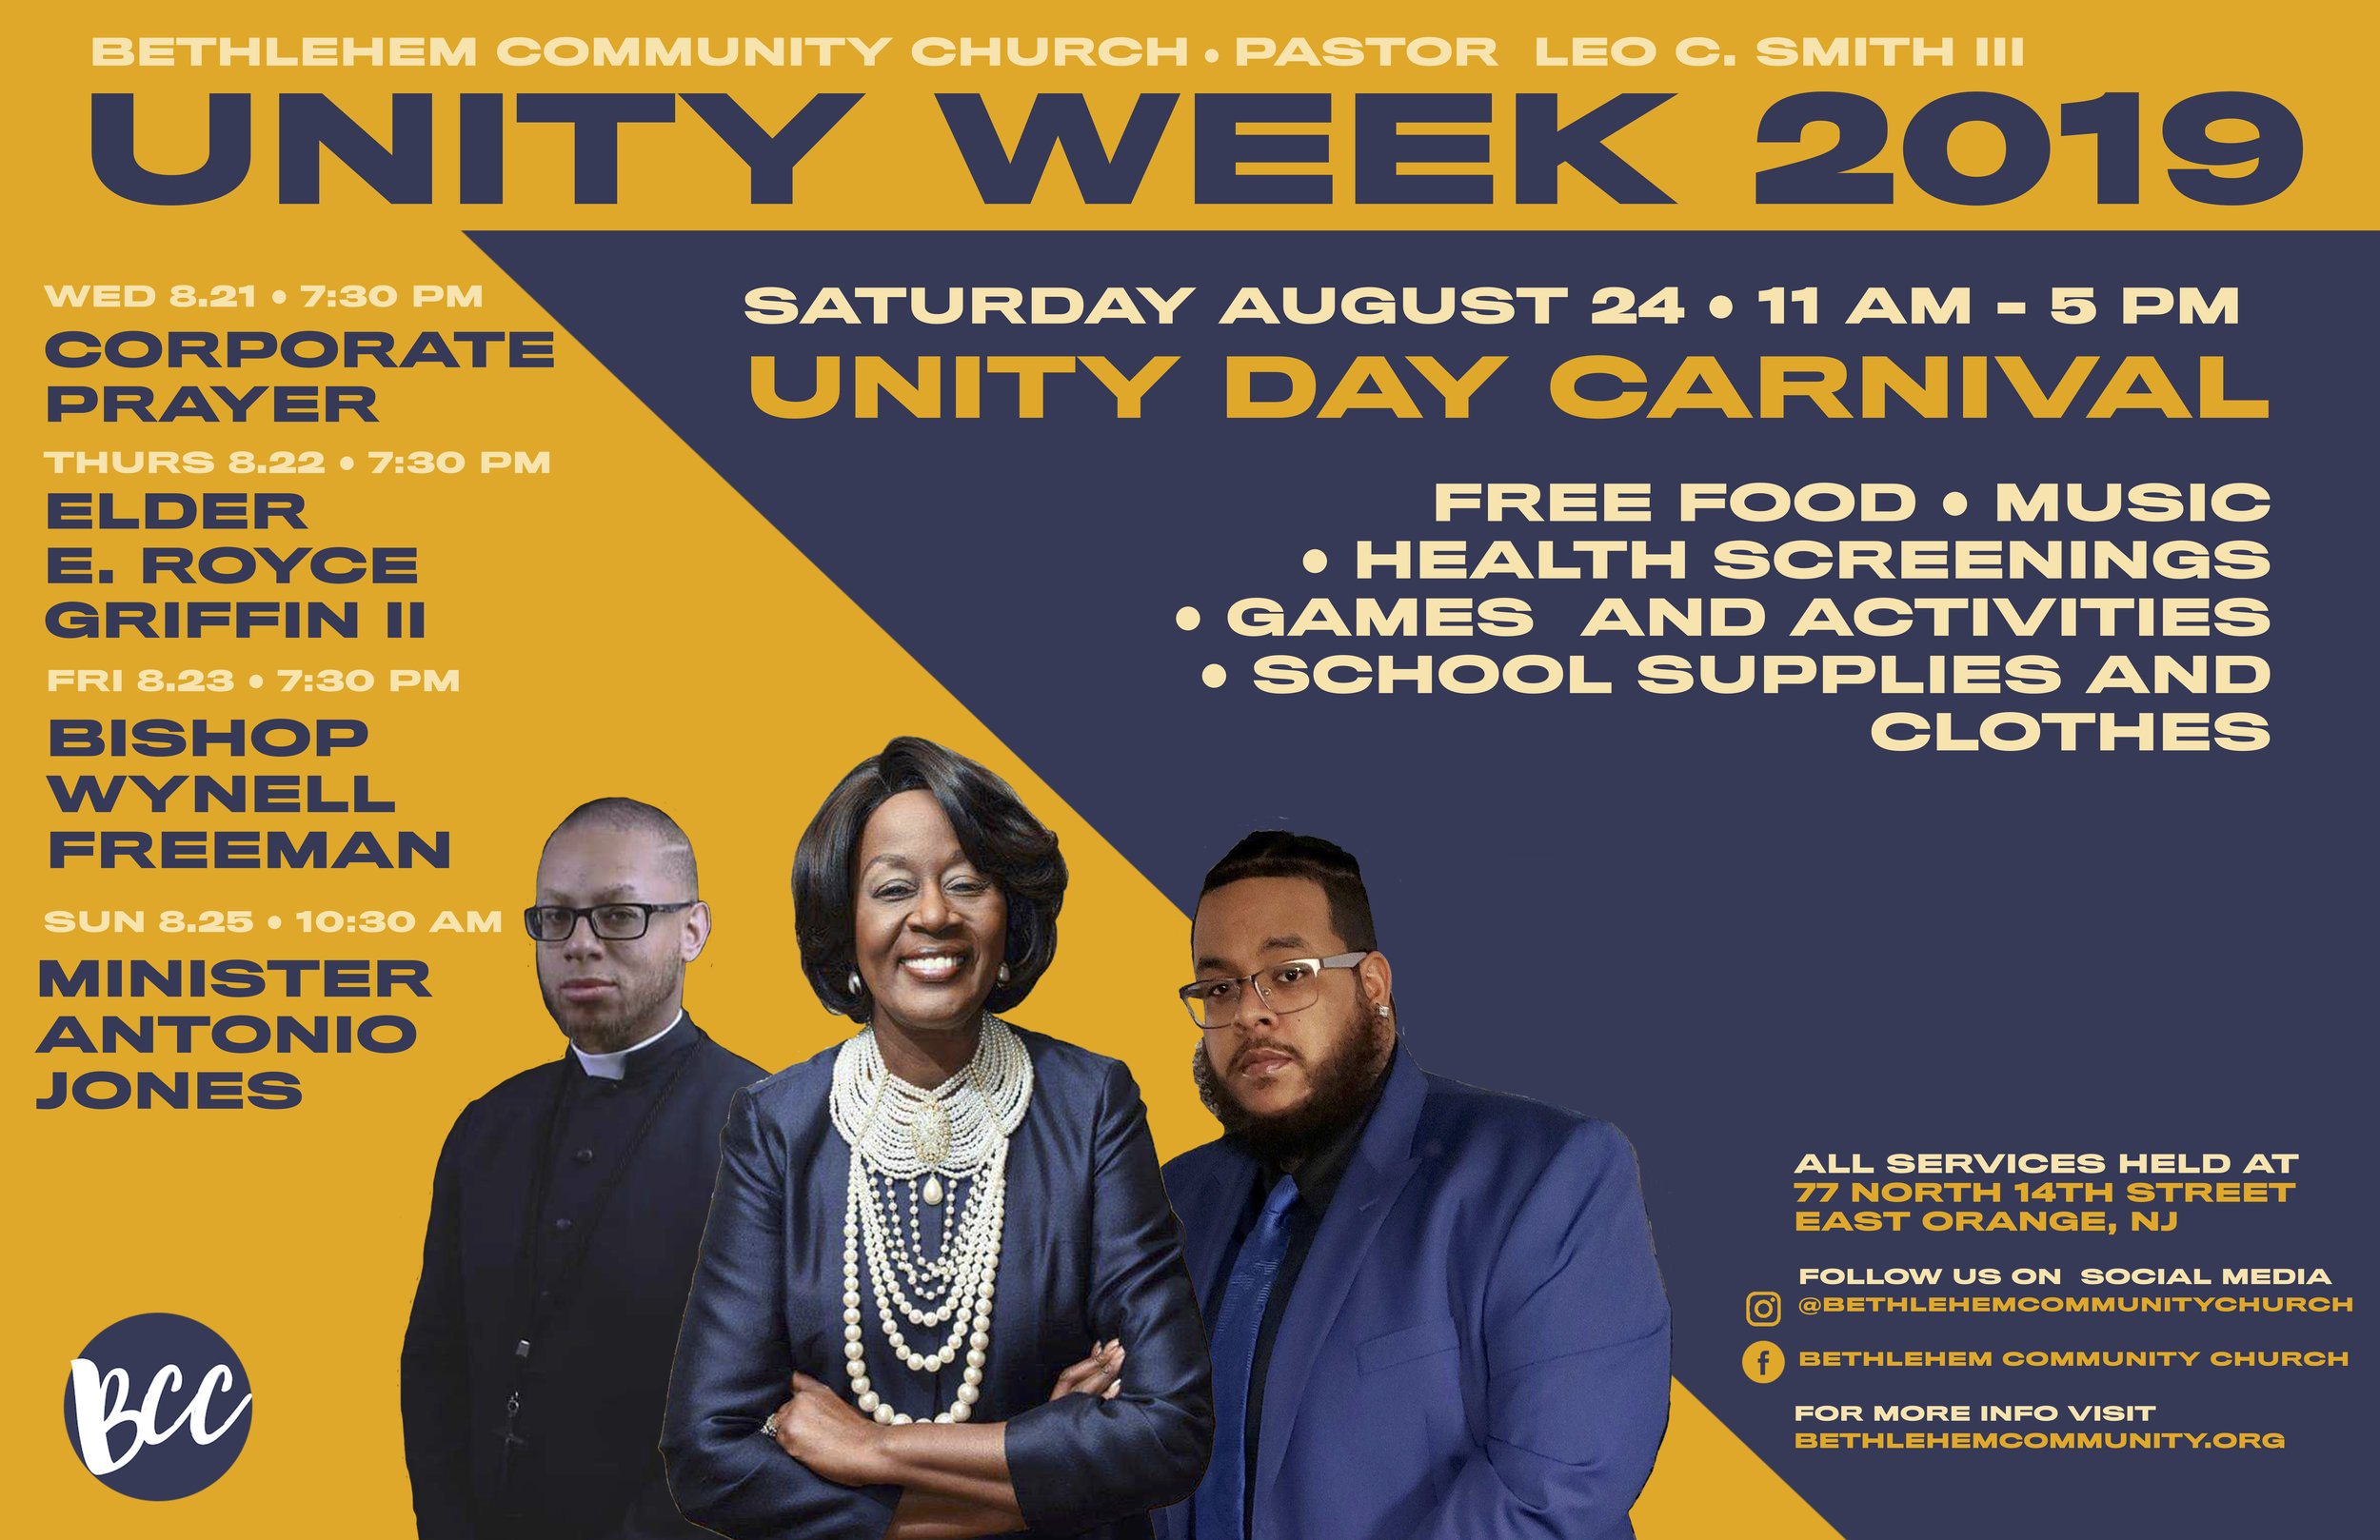 UNITY 2019 - THE COUNTDOWN TO NEXT YEAR'S UNITY WEEK HAS BEGUN. EVERY YEAR, THE BETHLEHEM COMMUNITY CHURCH COMES TOGETHER FOR A TIME OF CELEBRATION AND OUTREACH…